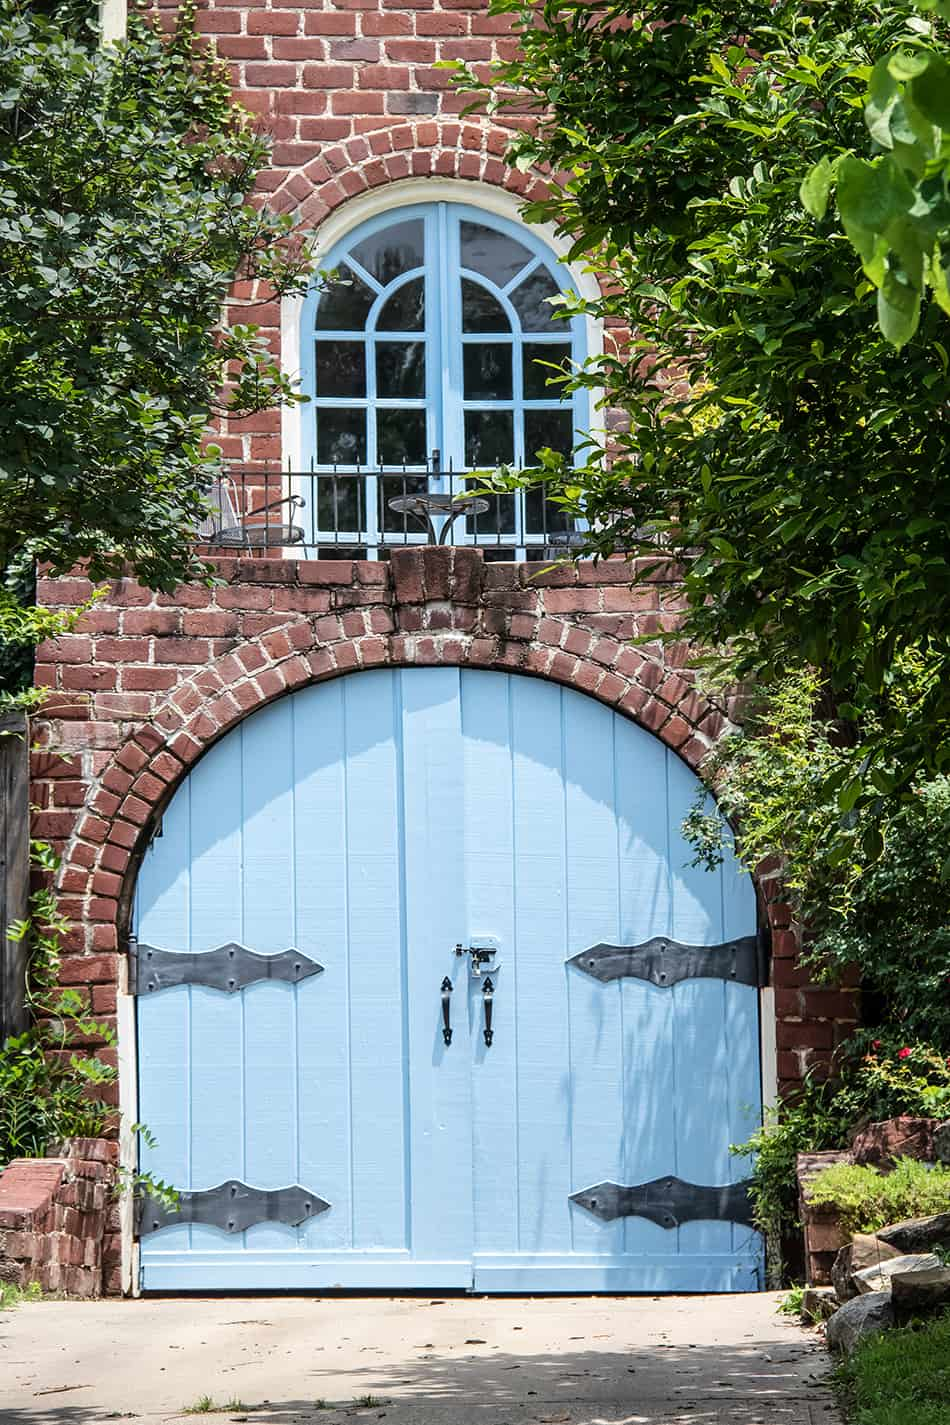 Arched Garage Door and Matching Window for Uniqueness